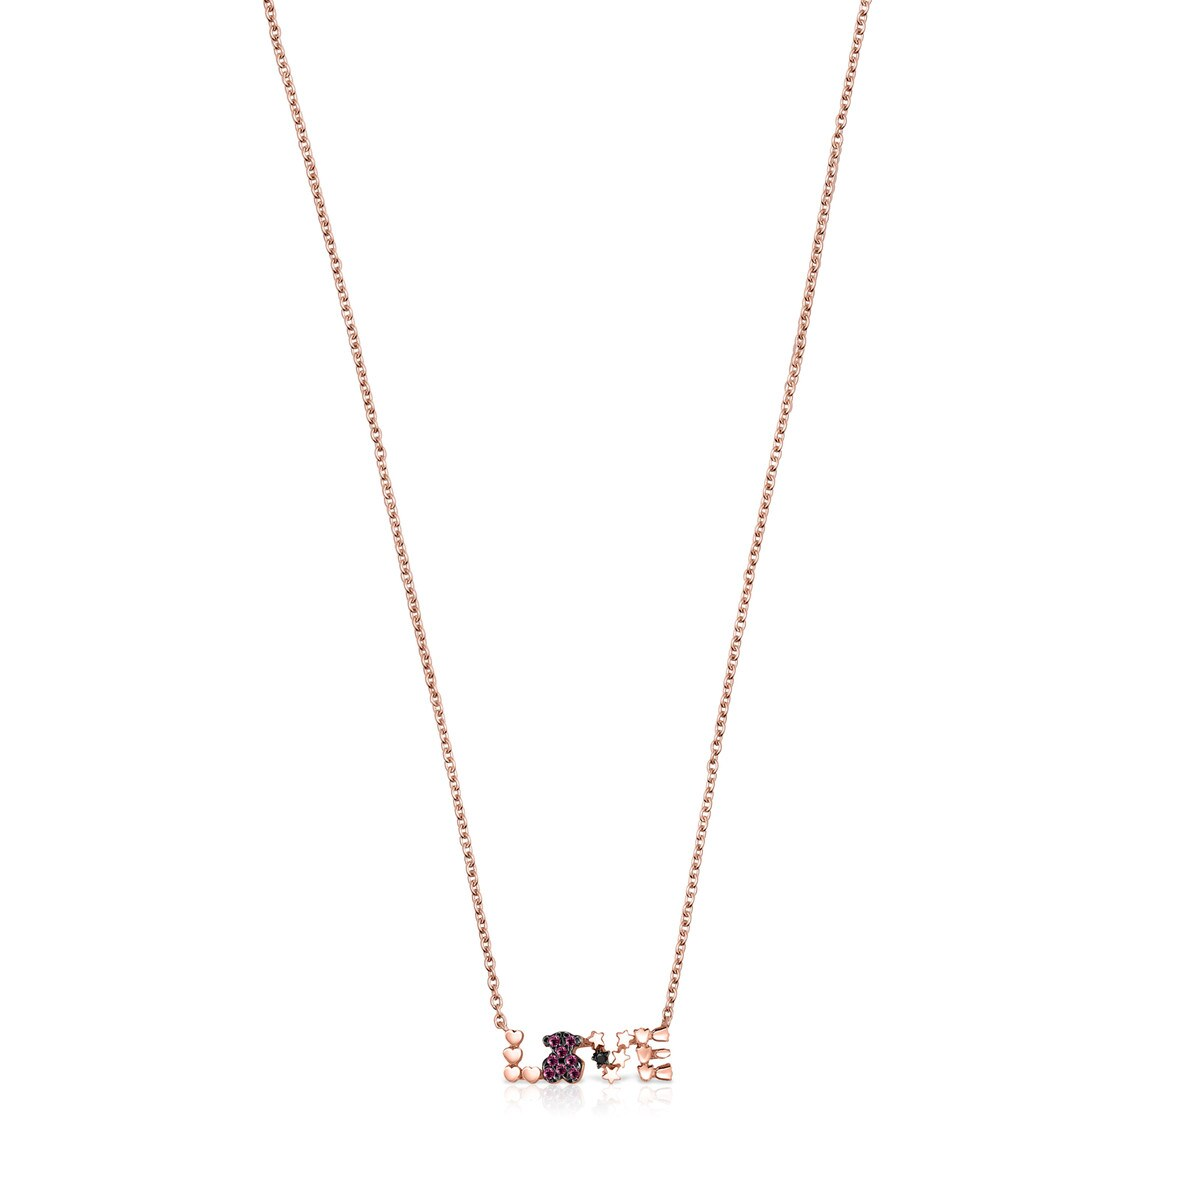 Rose Gold Vermeil San Valentín love Necklace with Ruby and Spinel